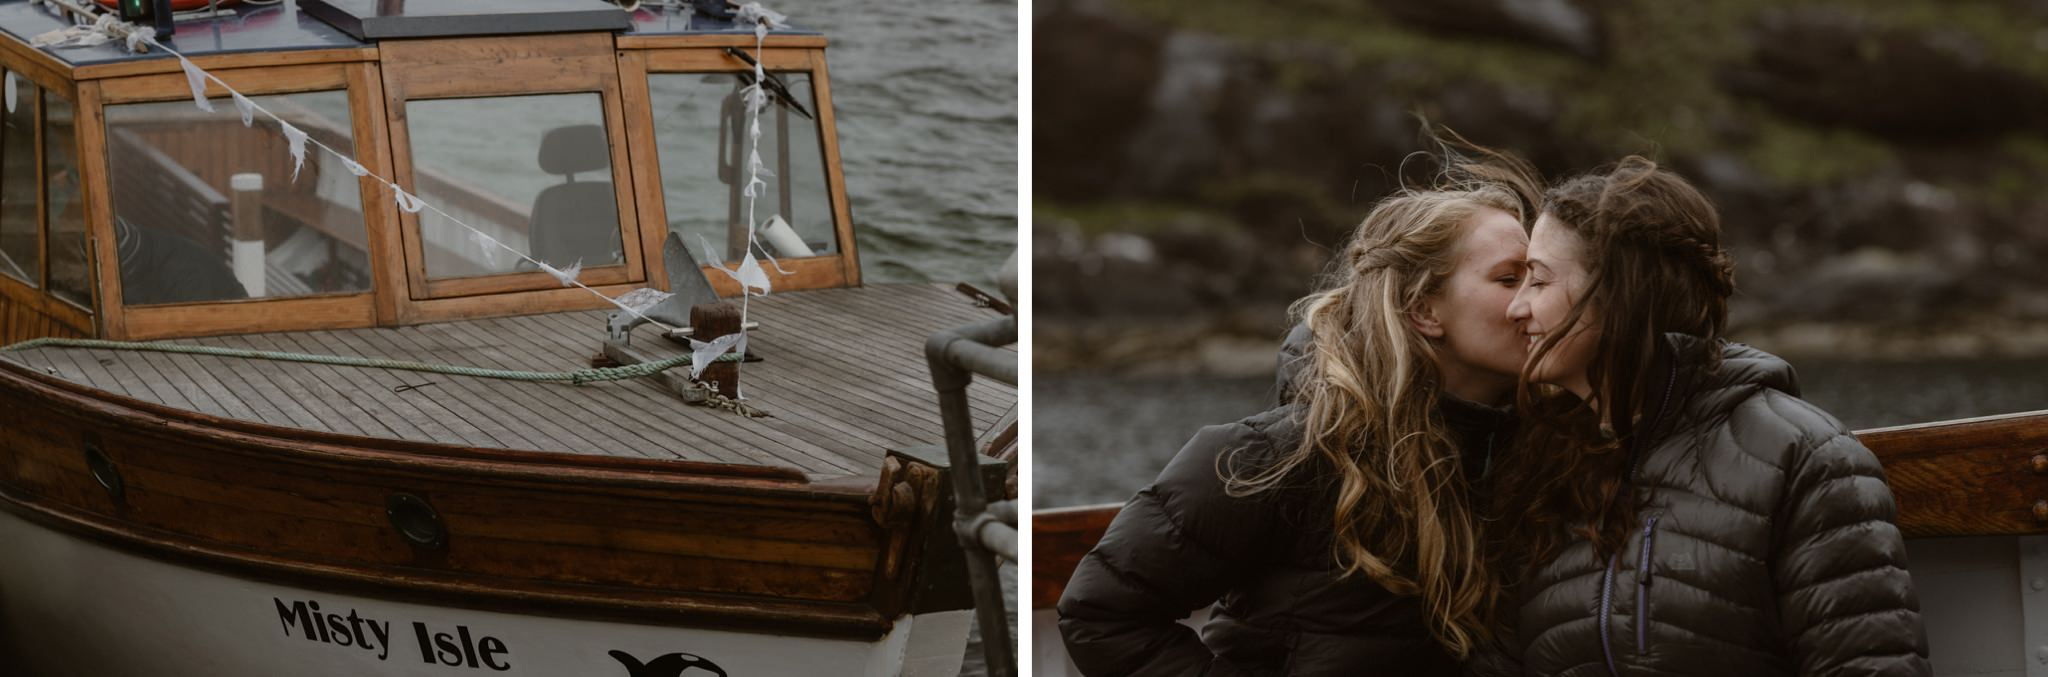 Travelling on the Misty Isle boat company to Loch Coruisk